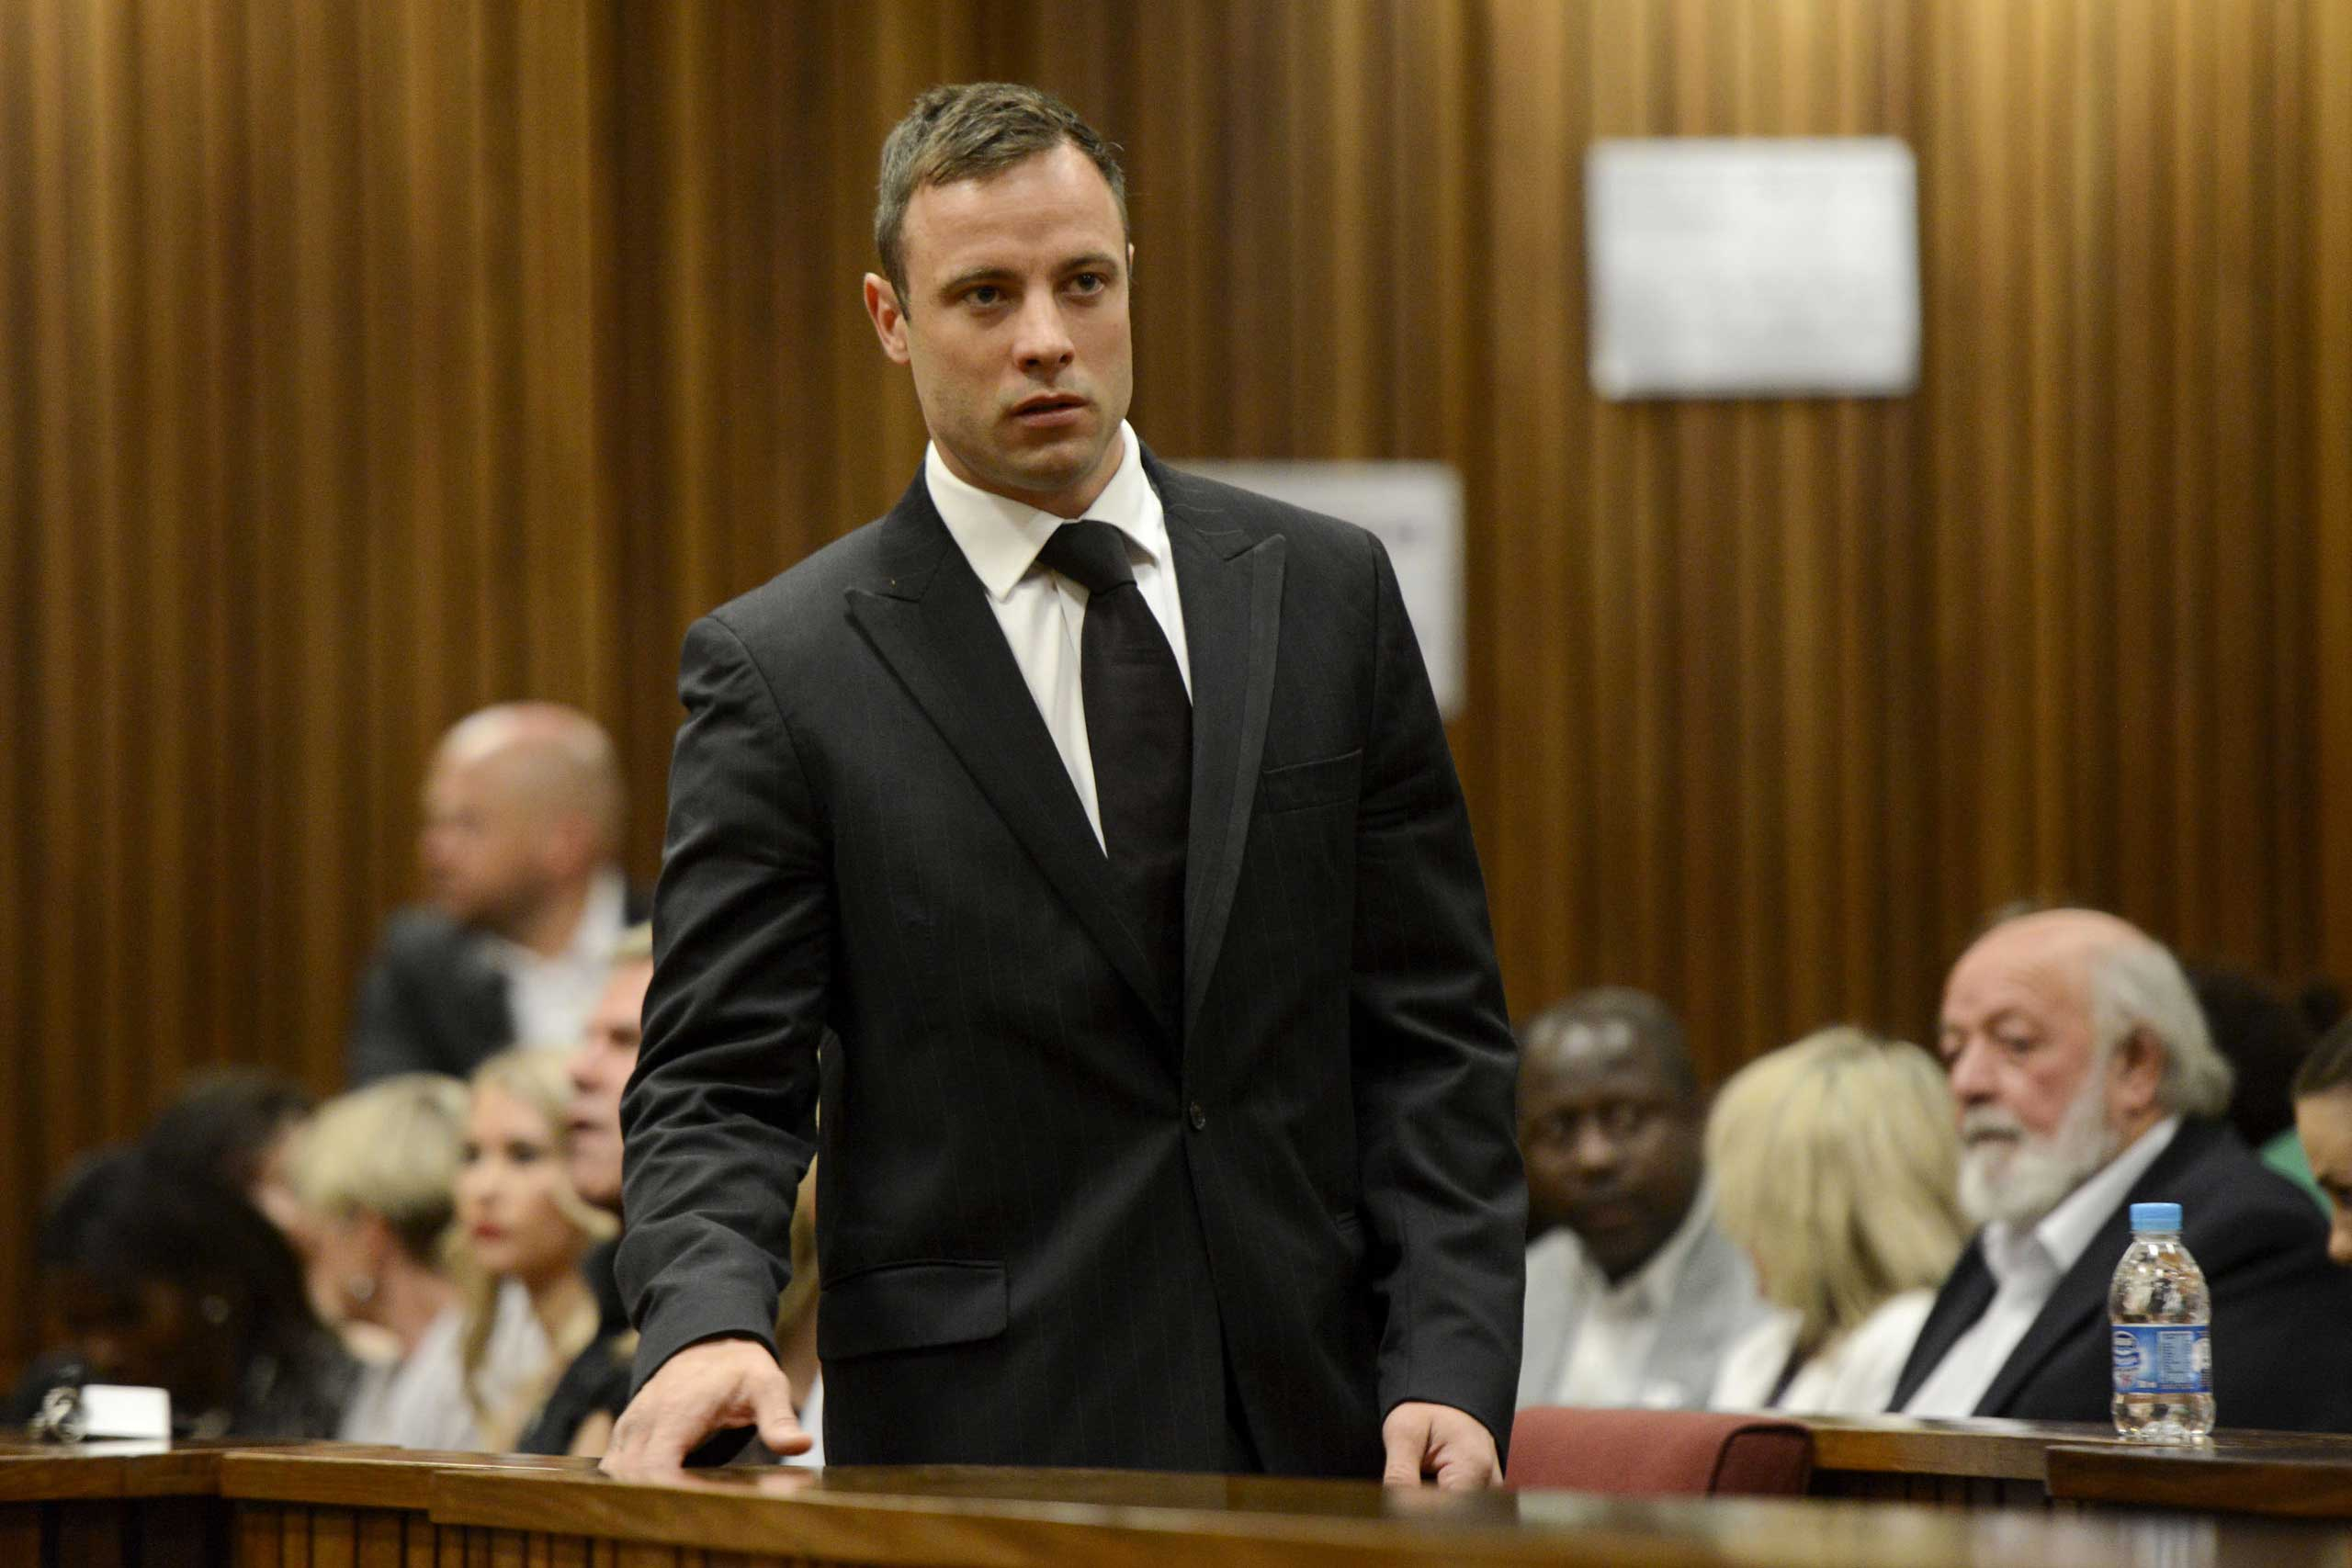 Oscar Pistorius arrives in the Pretoria High Court for sentencing in his murder trial on Oct. 21, 2014, in Pretoria, South Africa